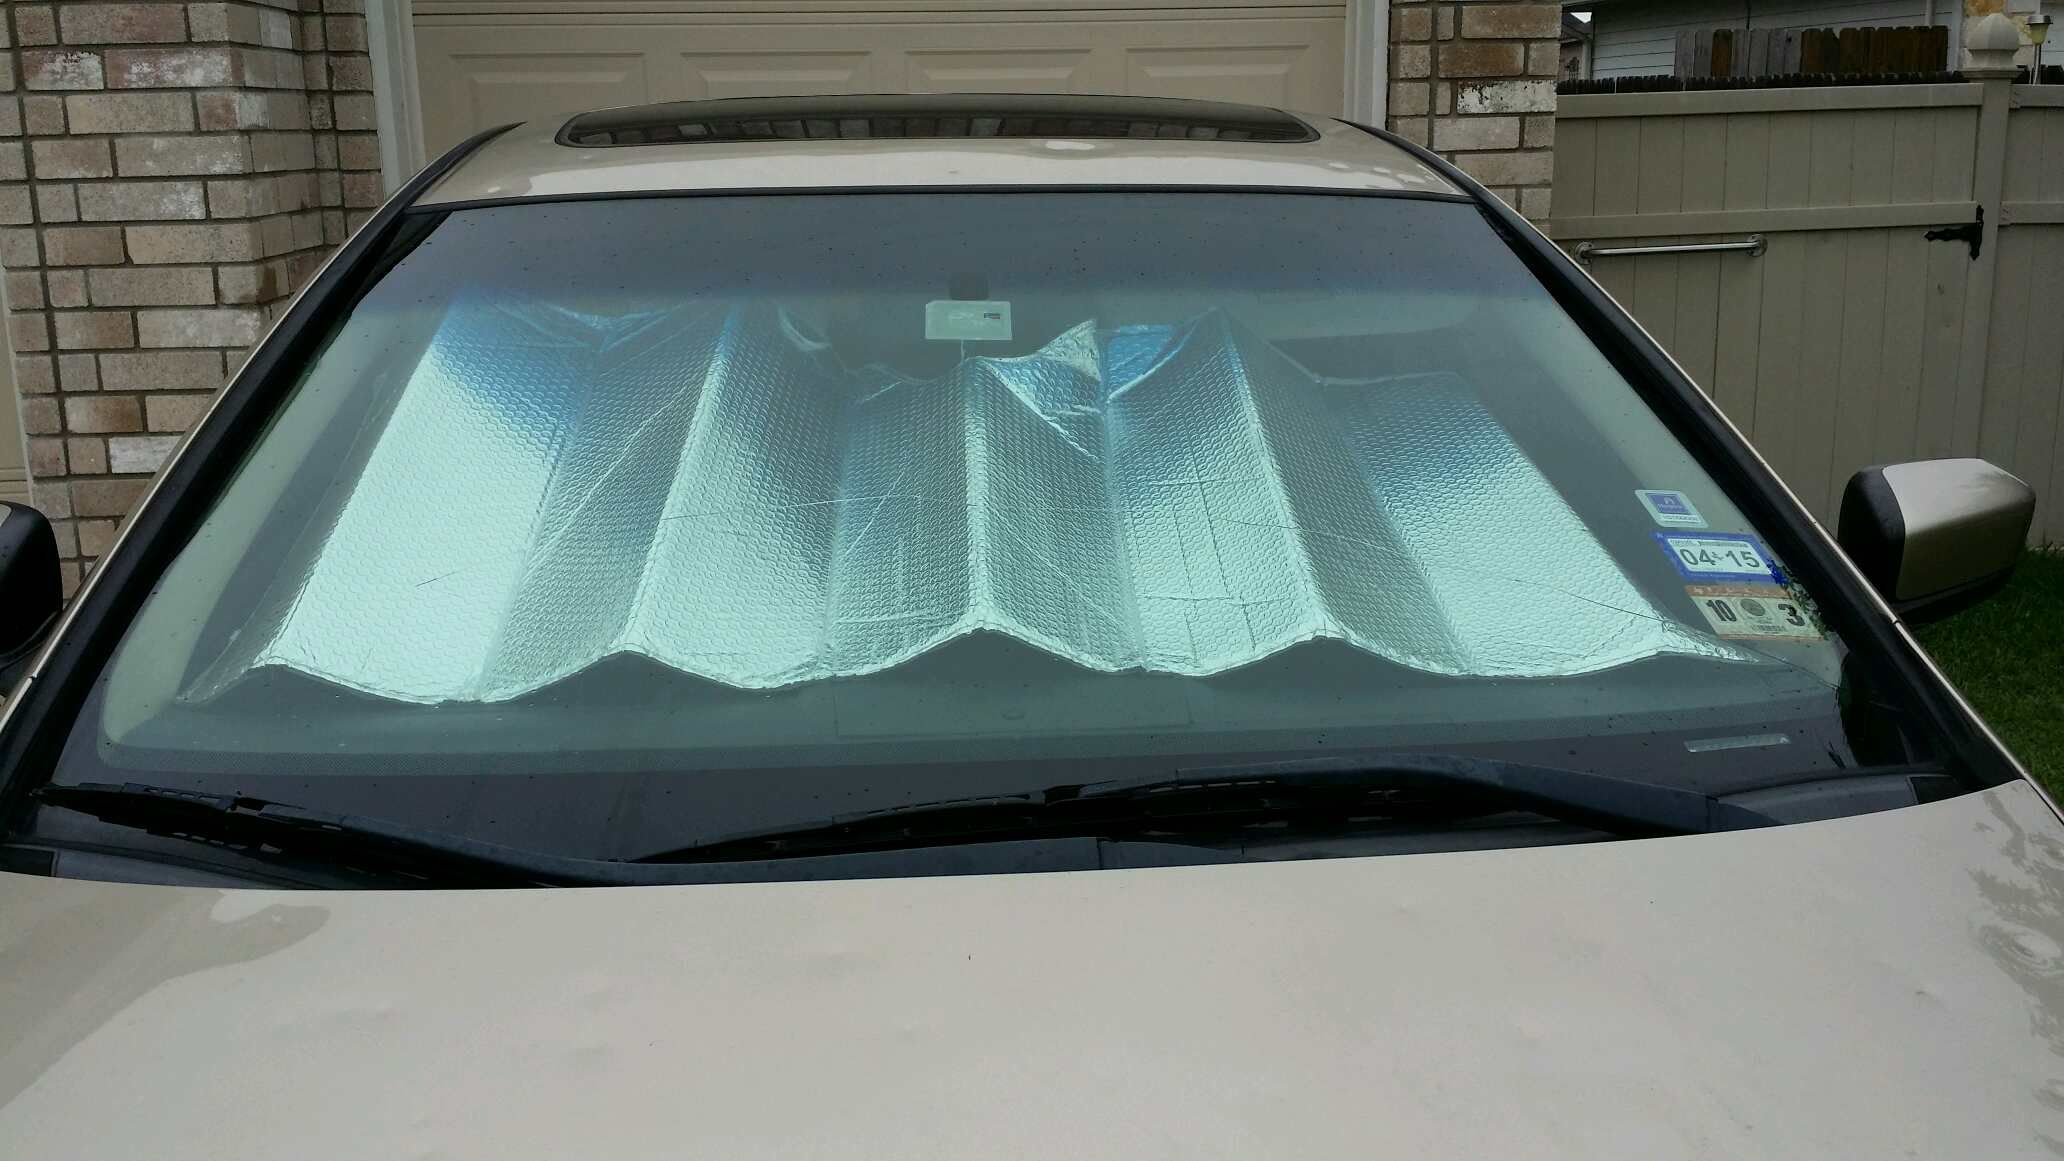 2006 honda accord 2 door coupe windshield